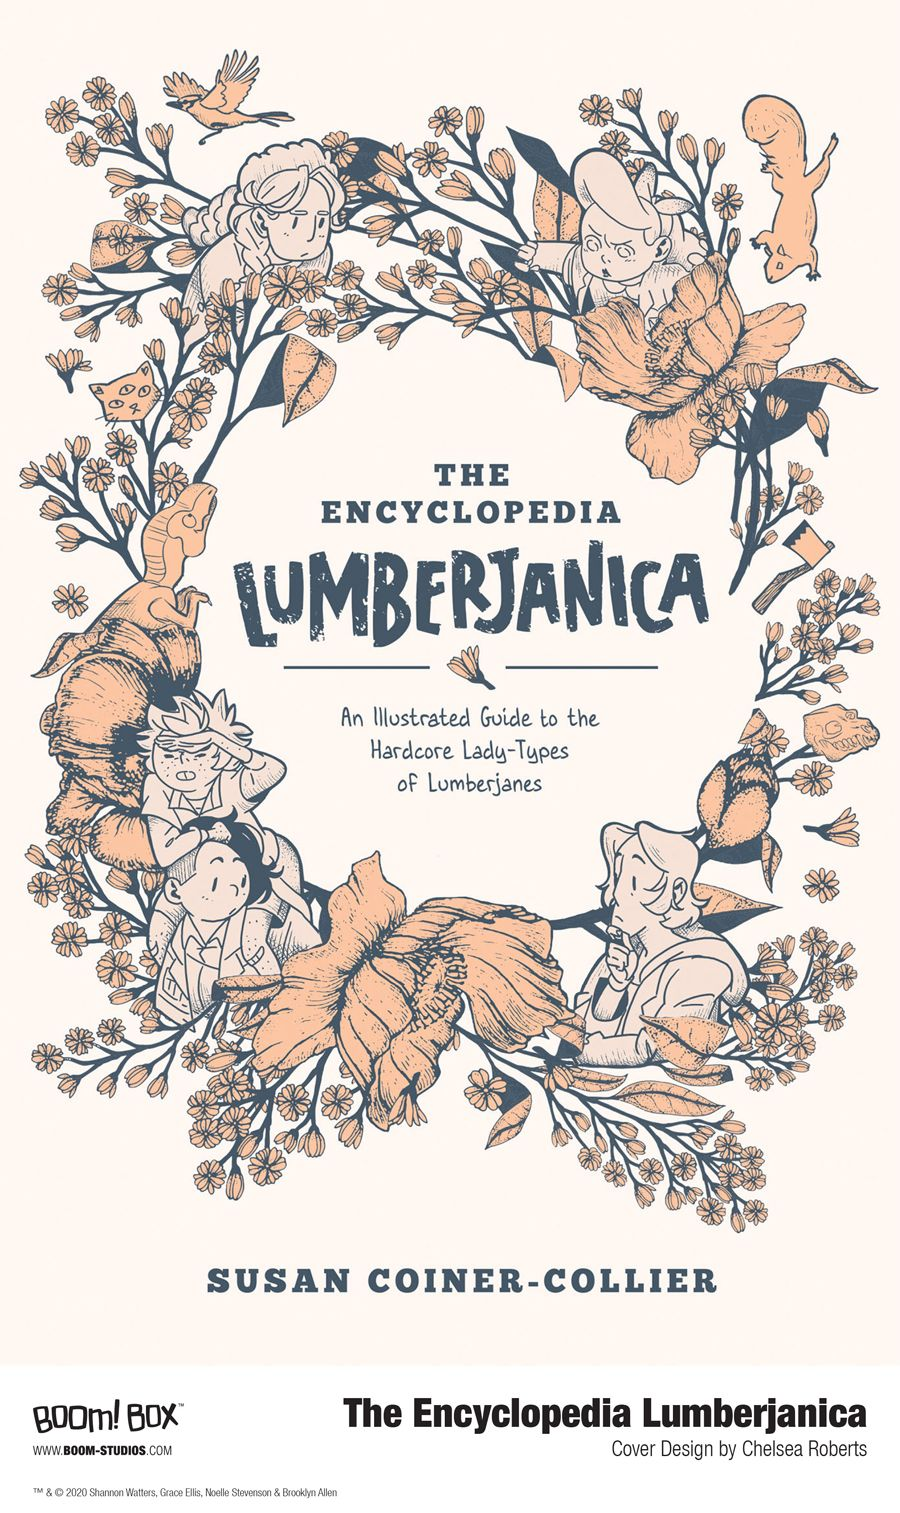 THE ENCYCLOPEDIA LUMBERJANICA